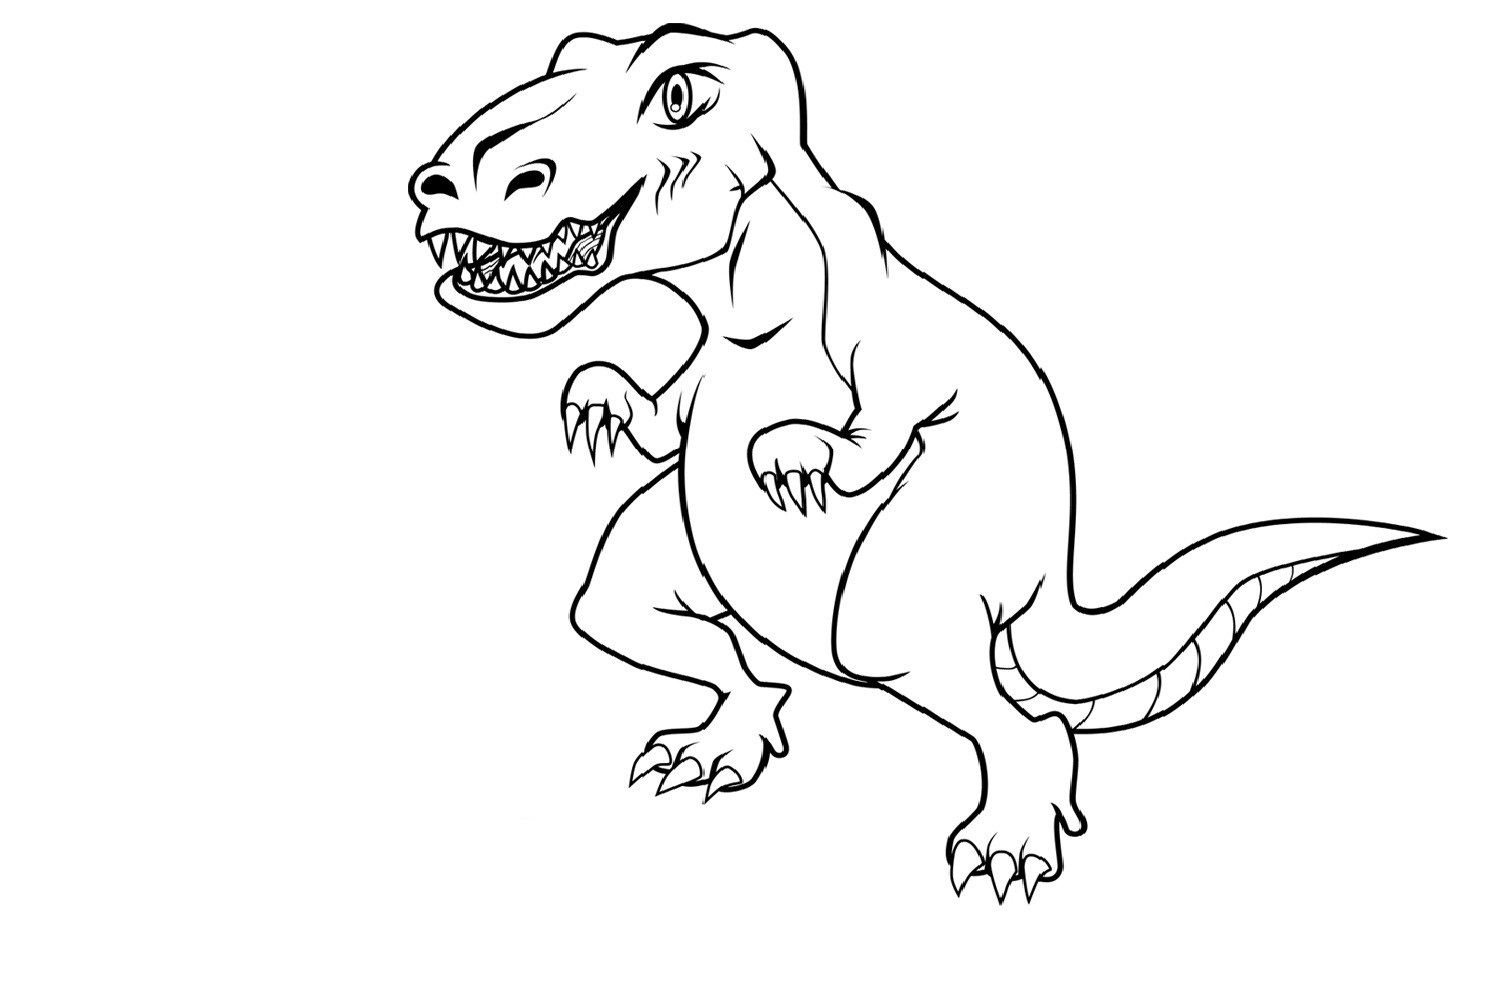 free printable dinosaur coloring pages for kids - Printable Color